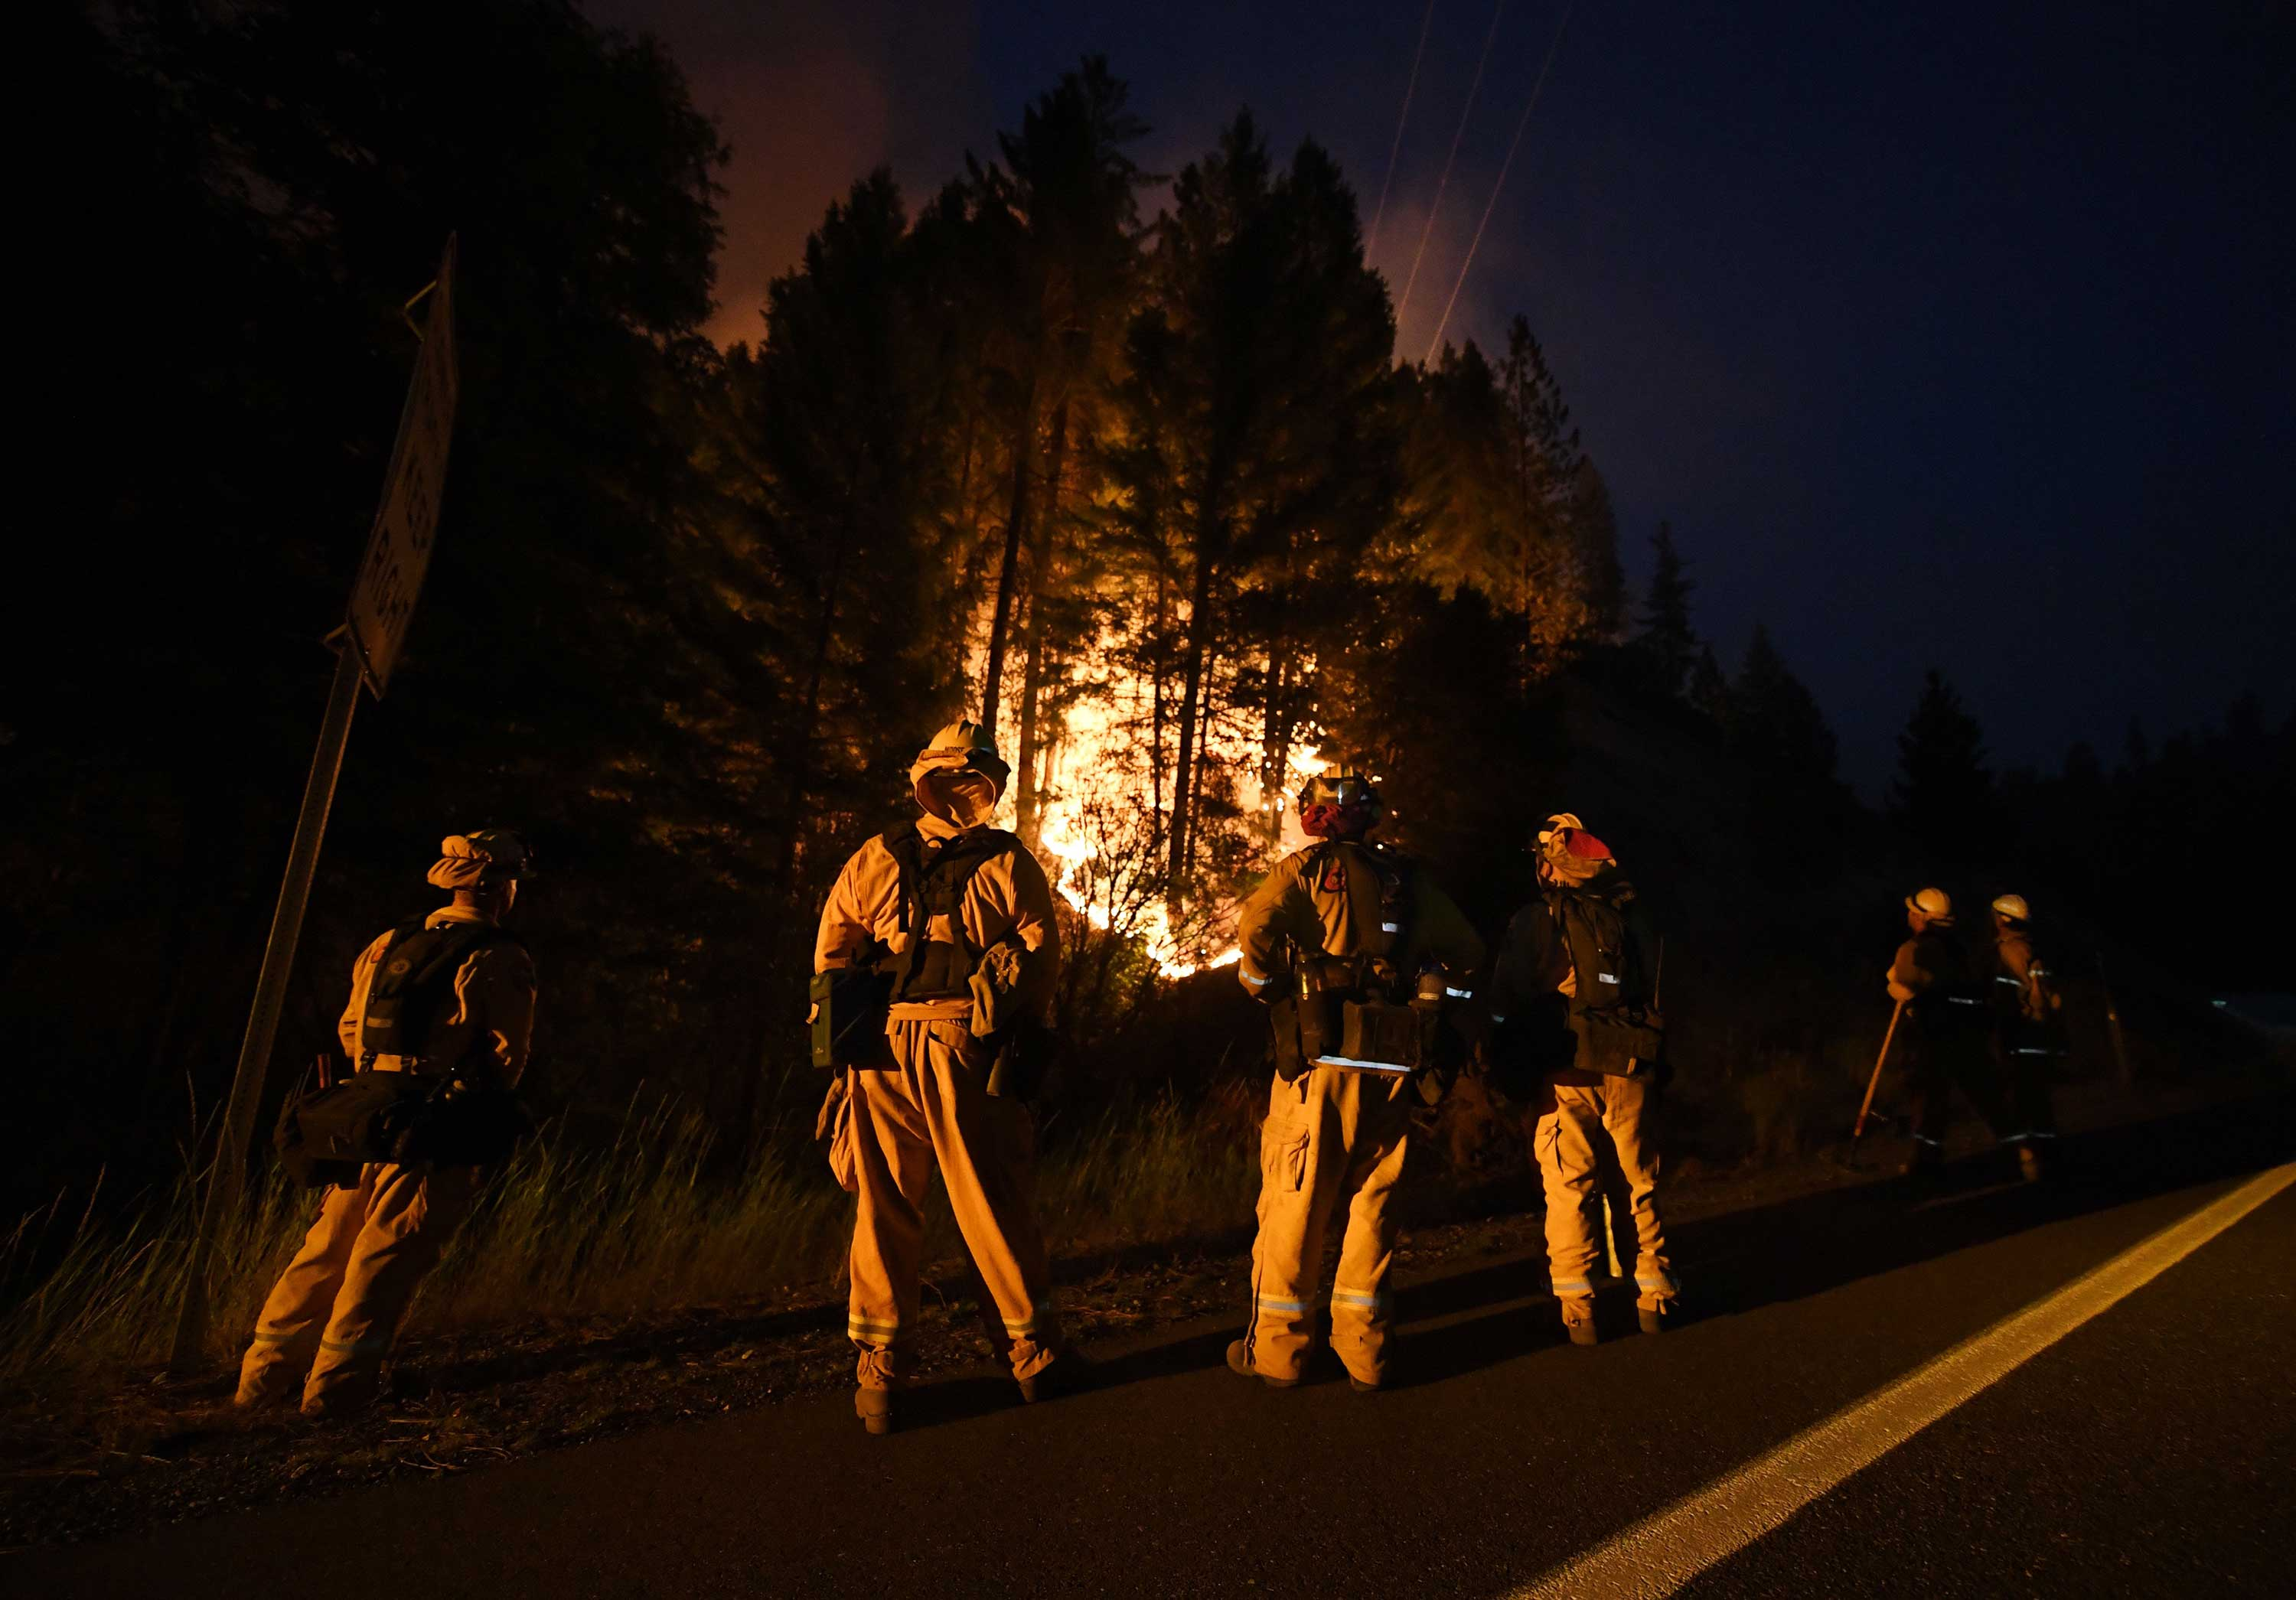 "<div class=""meta image-caption""><div class=""origin-logo origin-image none""><span>none</span></div><span class=""caption-text"">Firefighters keep watch at a containment line as the Carr fire continues to spreads towards the town of Douglas City near Redding, California, on July 30, 2018. (MARK RALSTON/AFP/Getty Images)</span></div>"